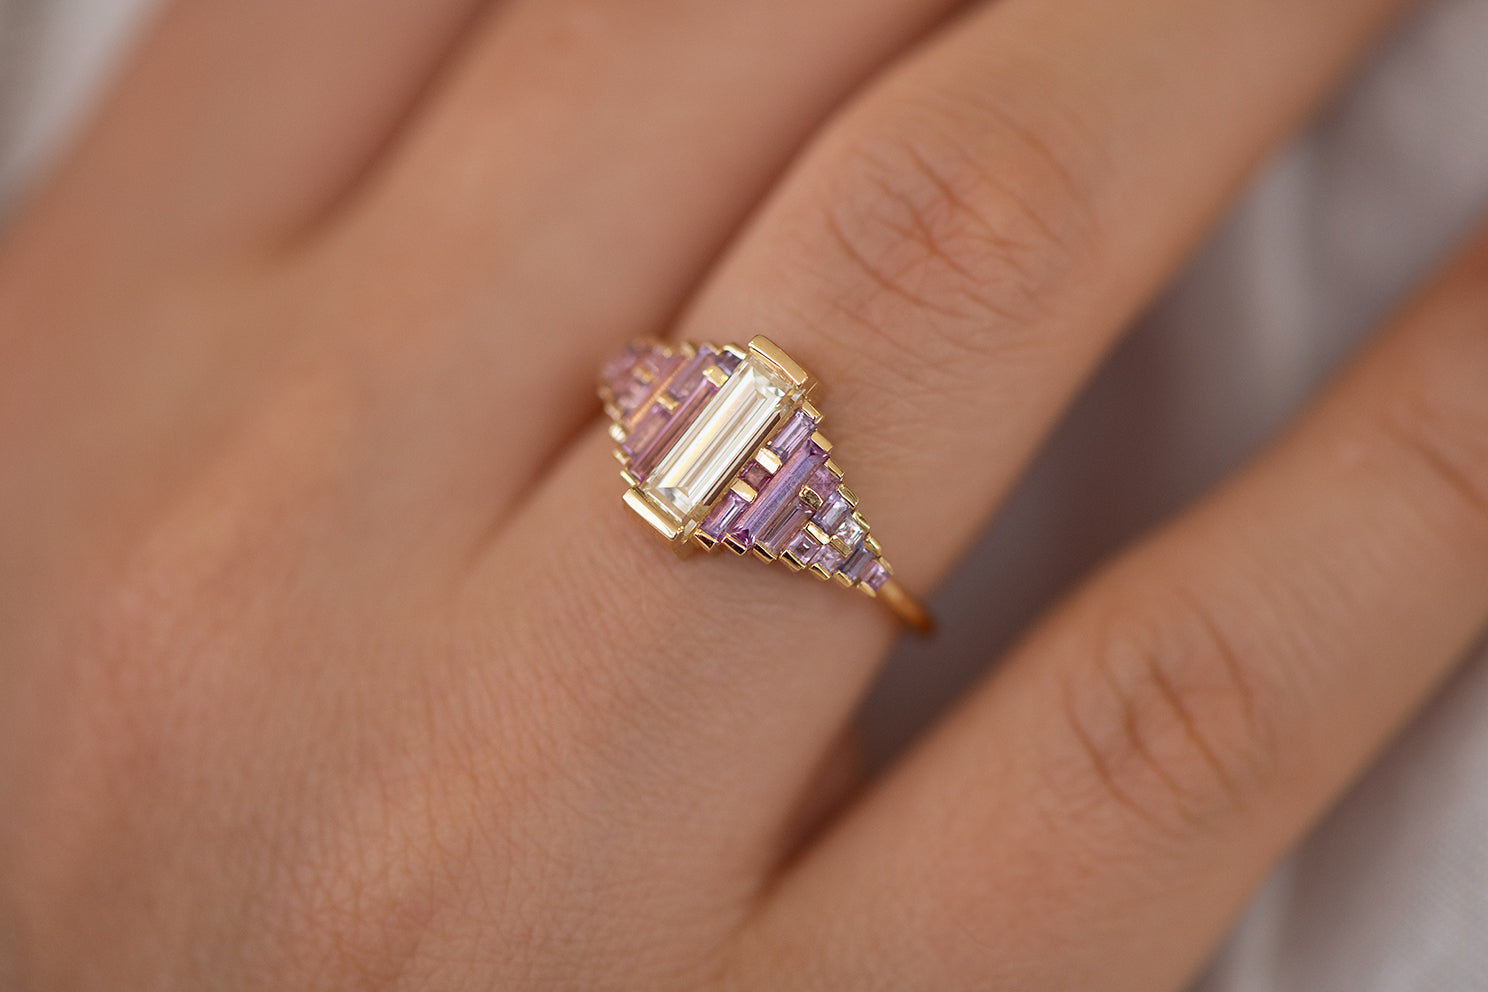 Purple and Lilac Sapphire Ring with Baguette Diamond Detail Shot on Finger